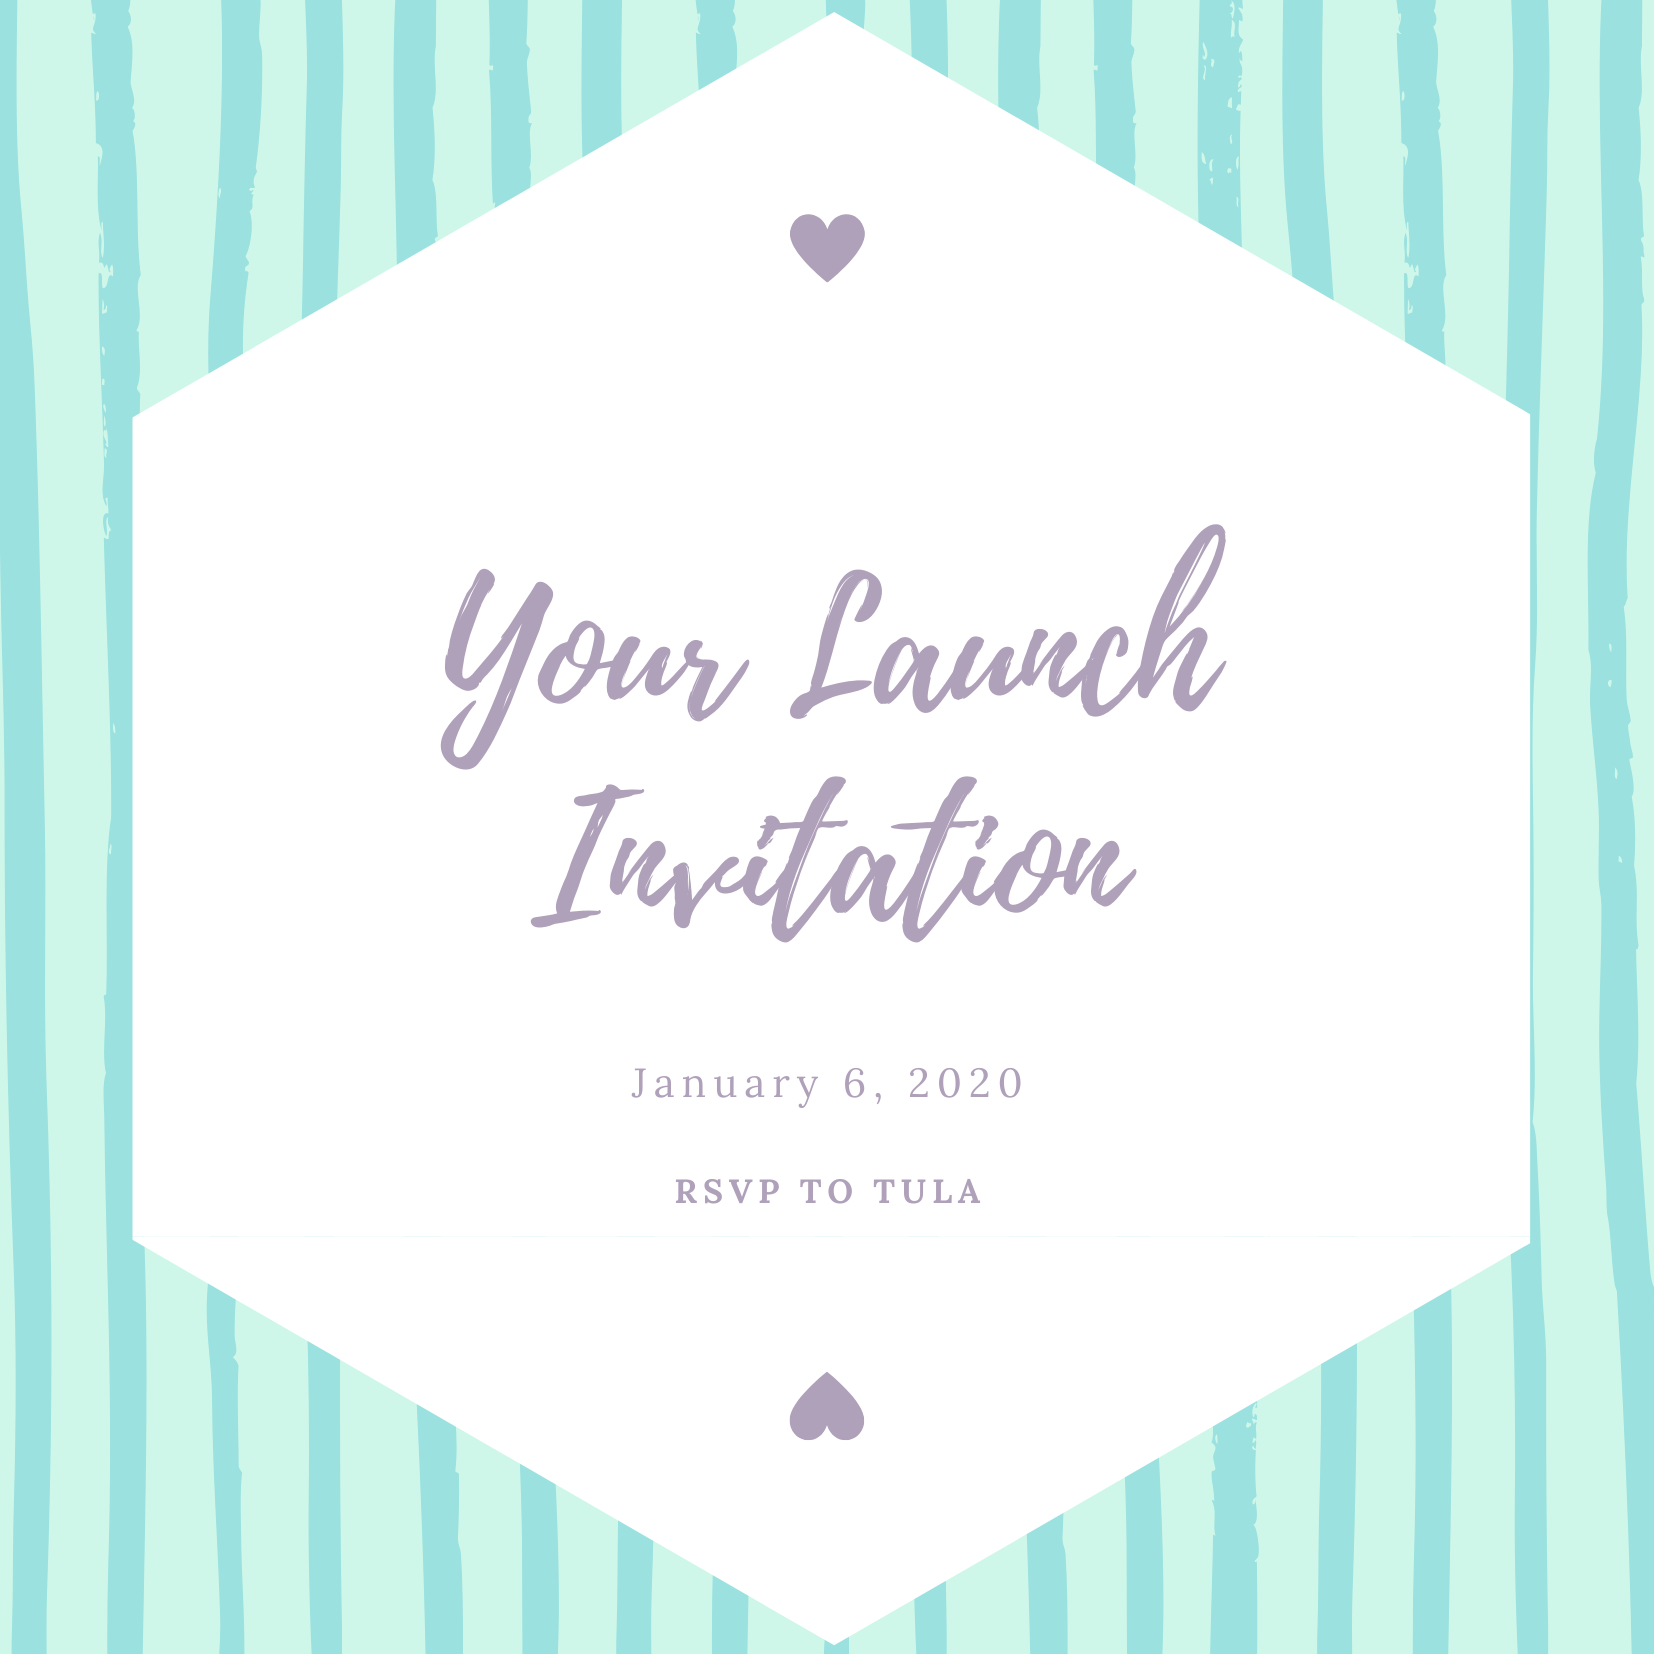 Your Launch Invitation